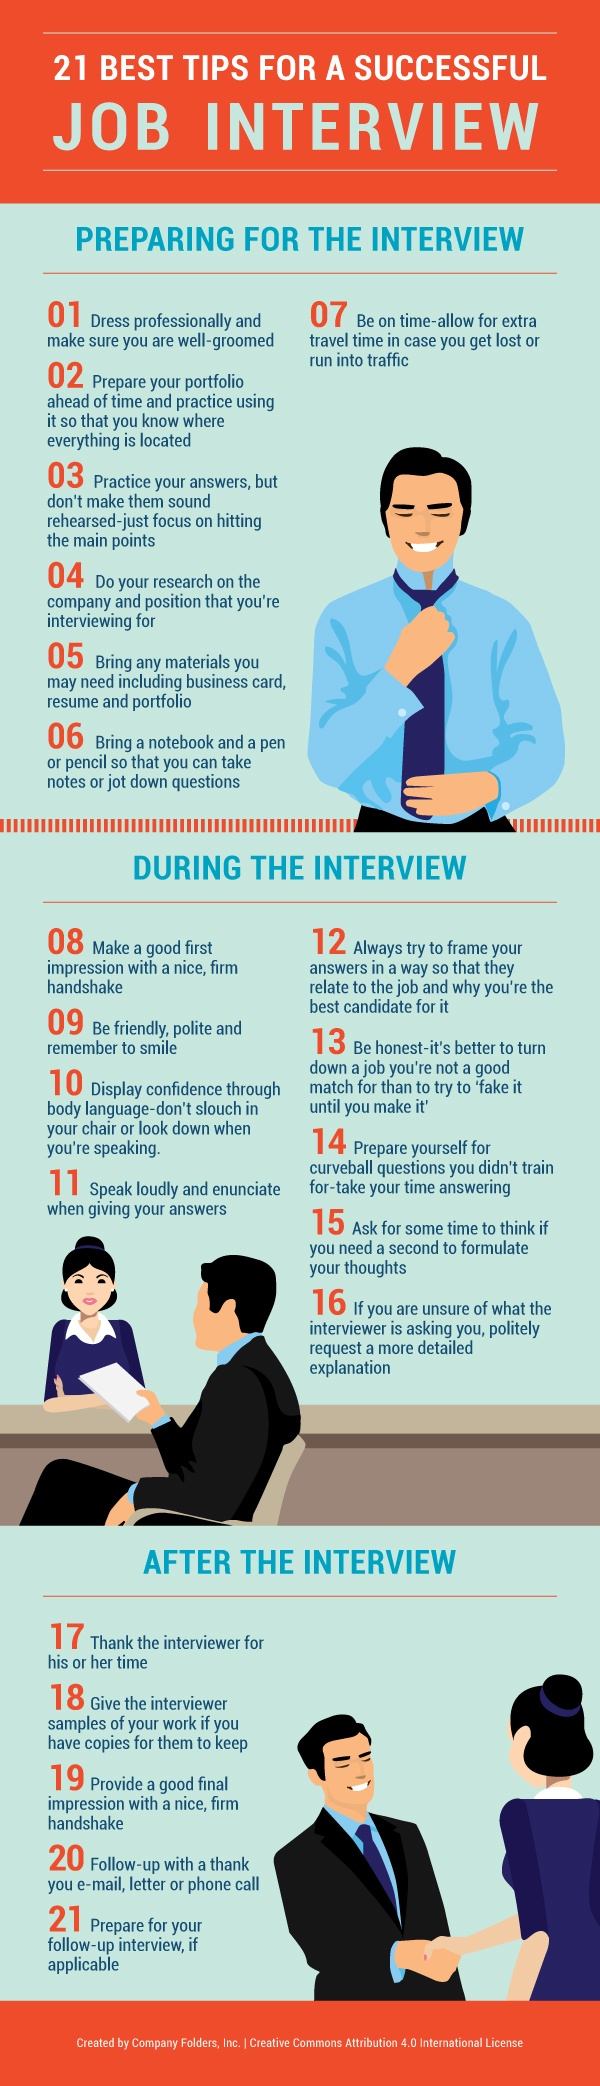 how to answer the biggest challenge interview question